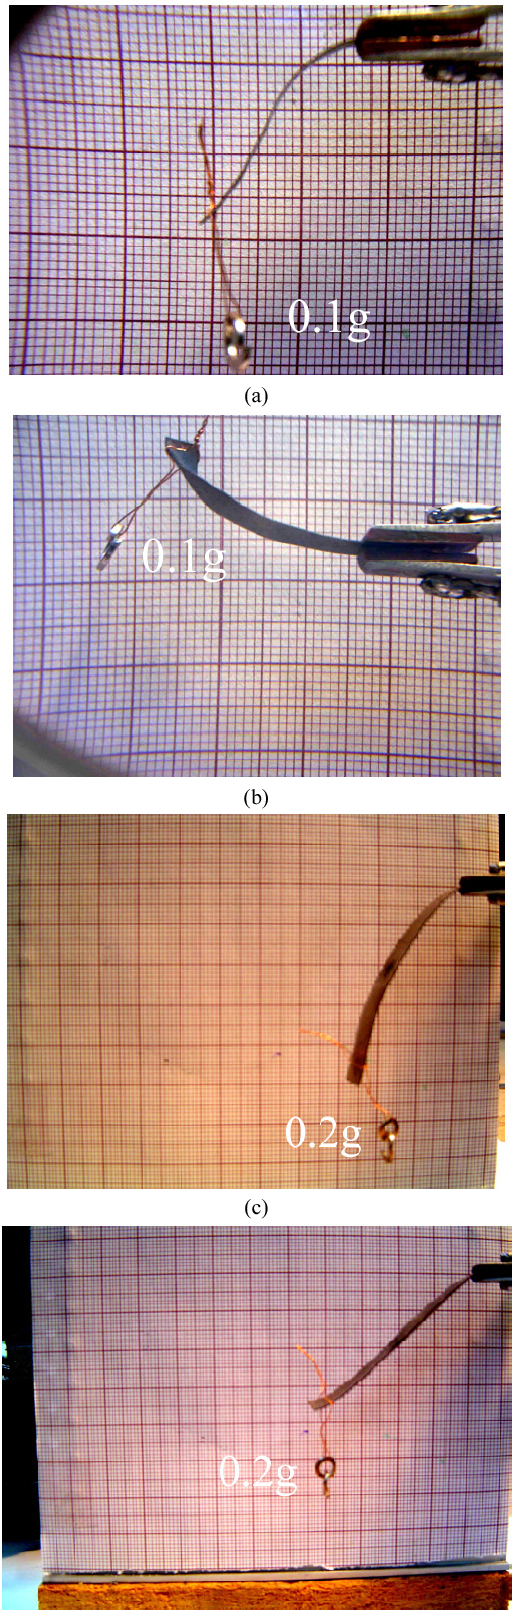 Figure 3 From Ionic Polymer Metal Composite Ipmc Actuators Schematic Diagram Of Artificial Muscle Finger Based Micro Gripper A Holding 01g Weight For Null